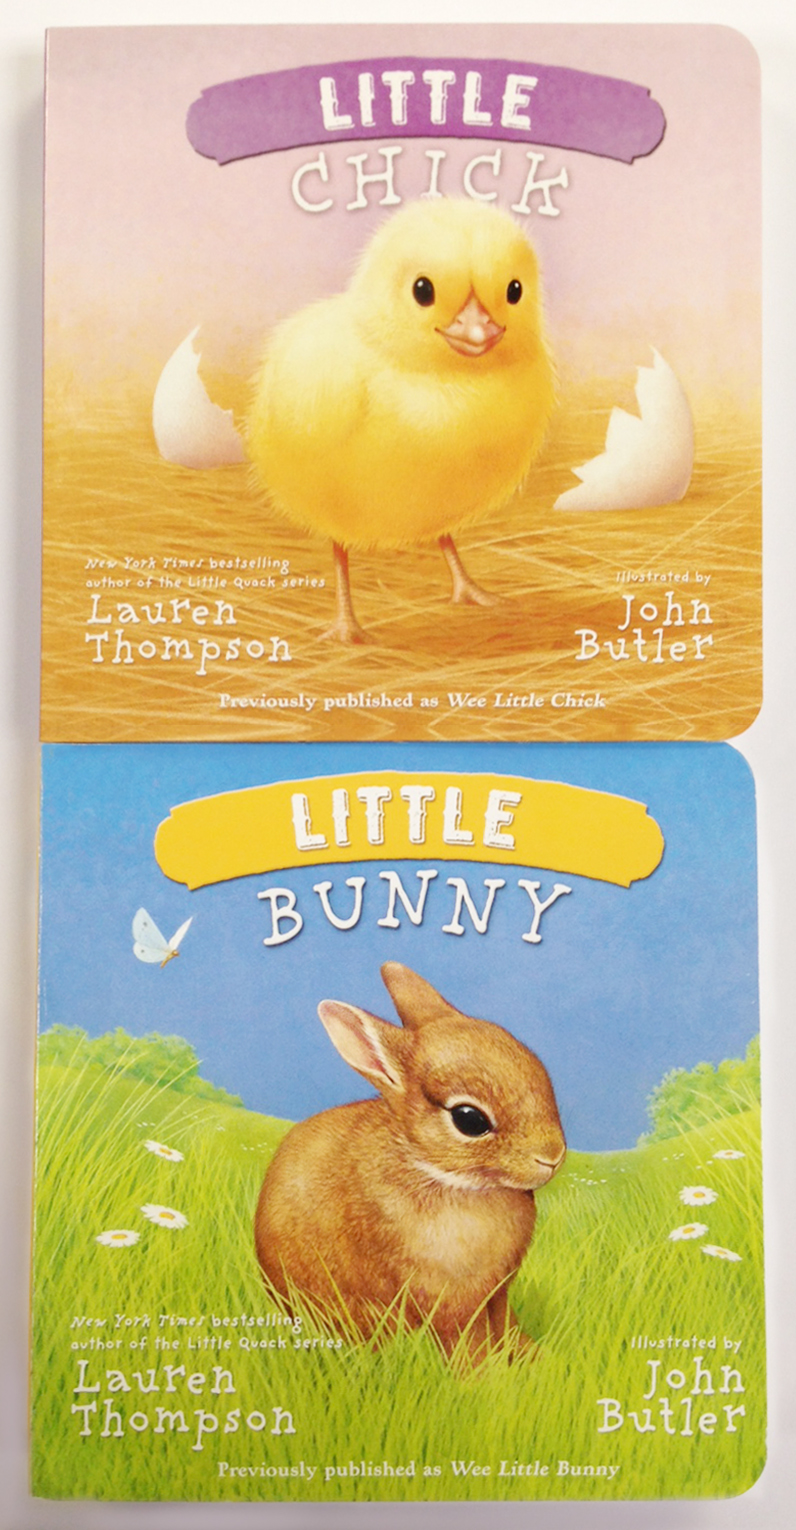 Little chick little bunny vertical 2 pack 9781481418768 hr